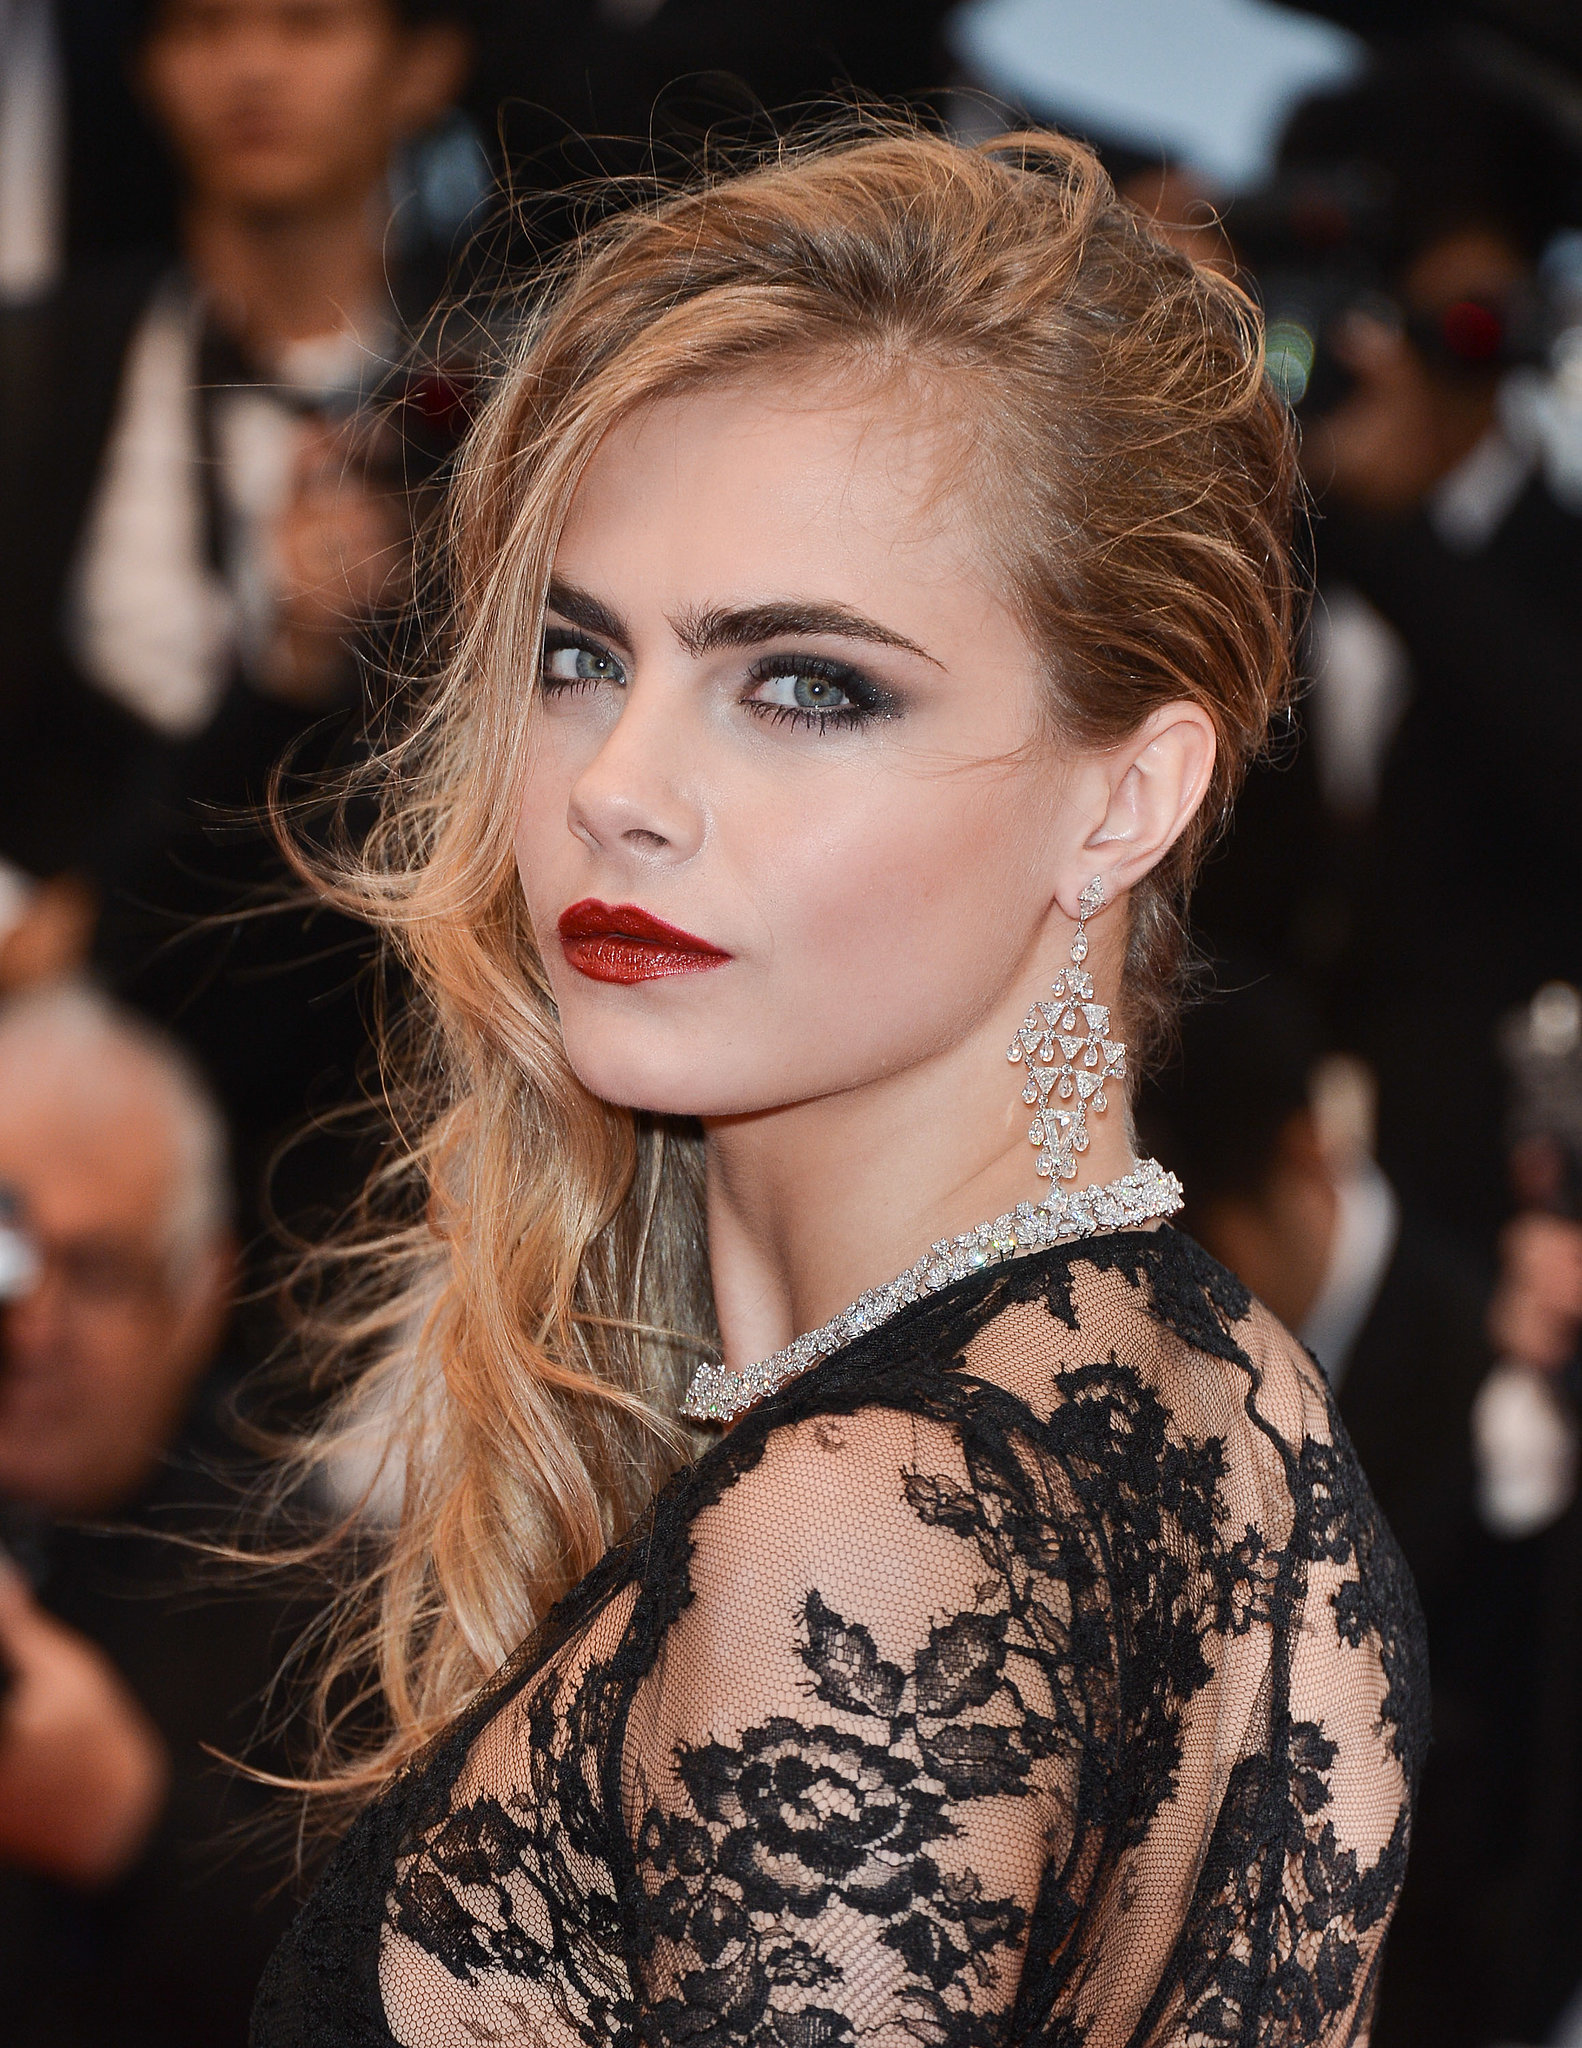 Cara-Delevingne-hair-had-tousled-texture-due-wet-weather